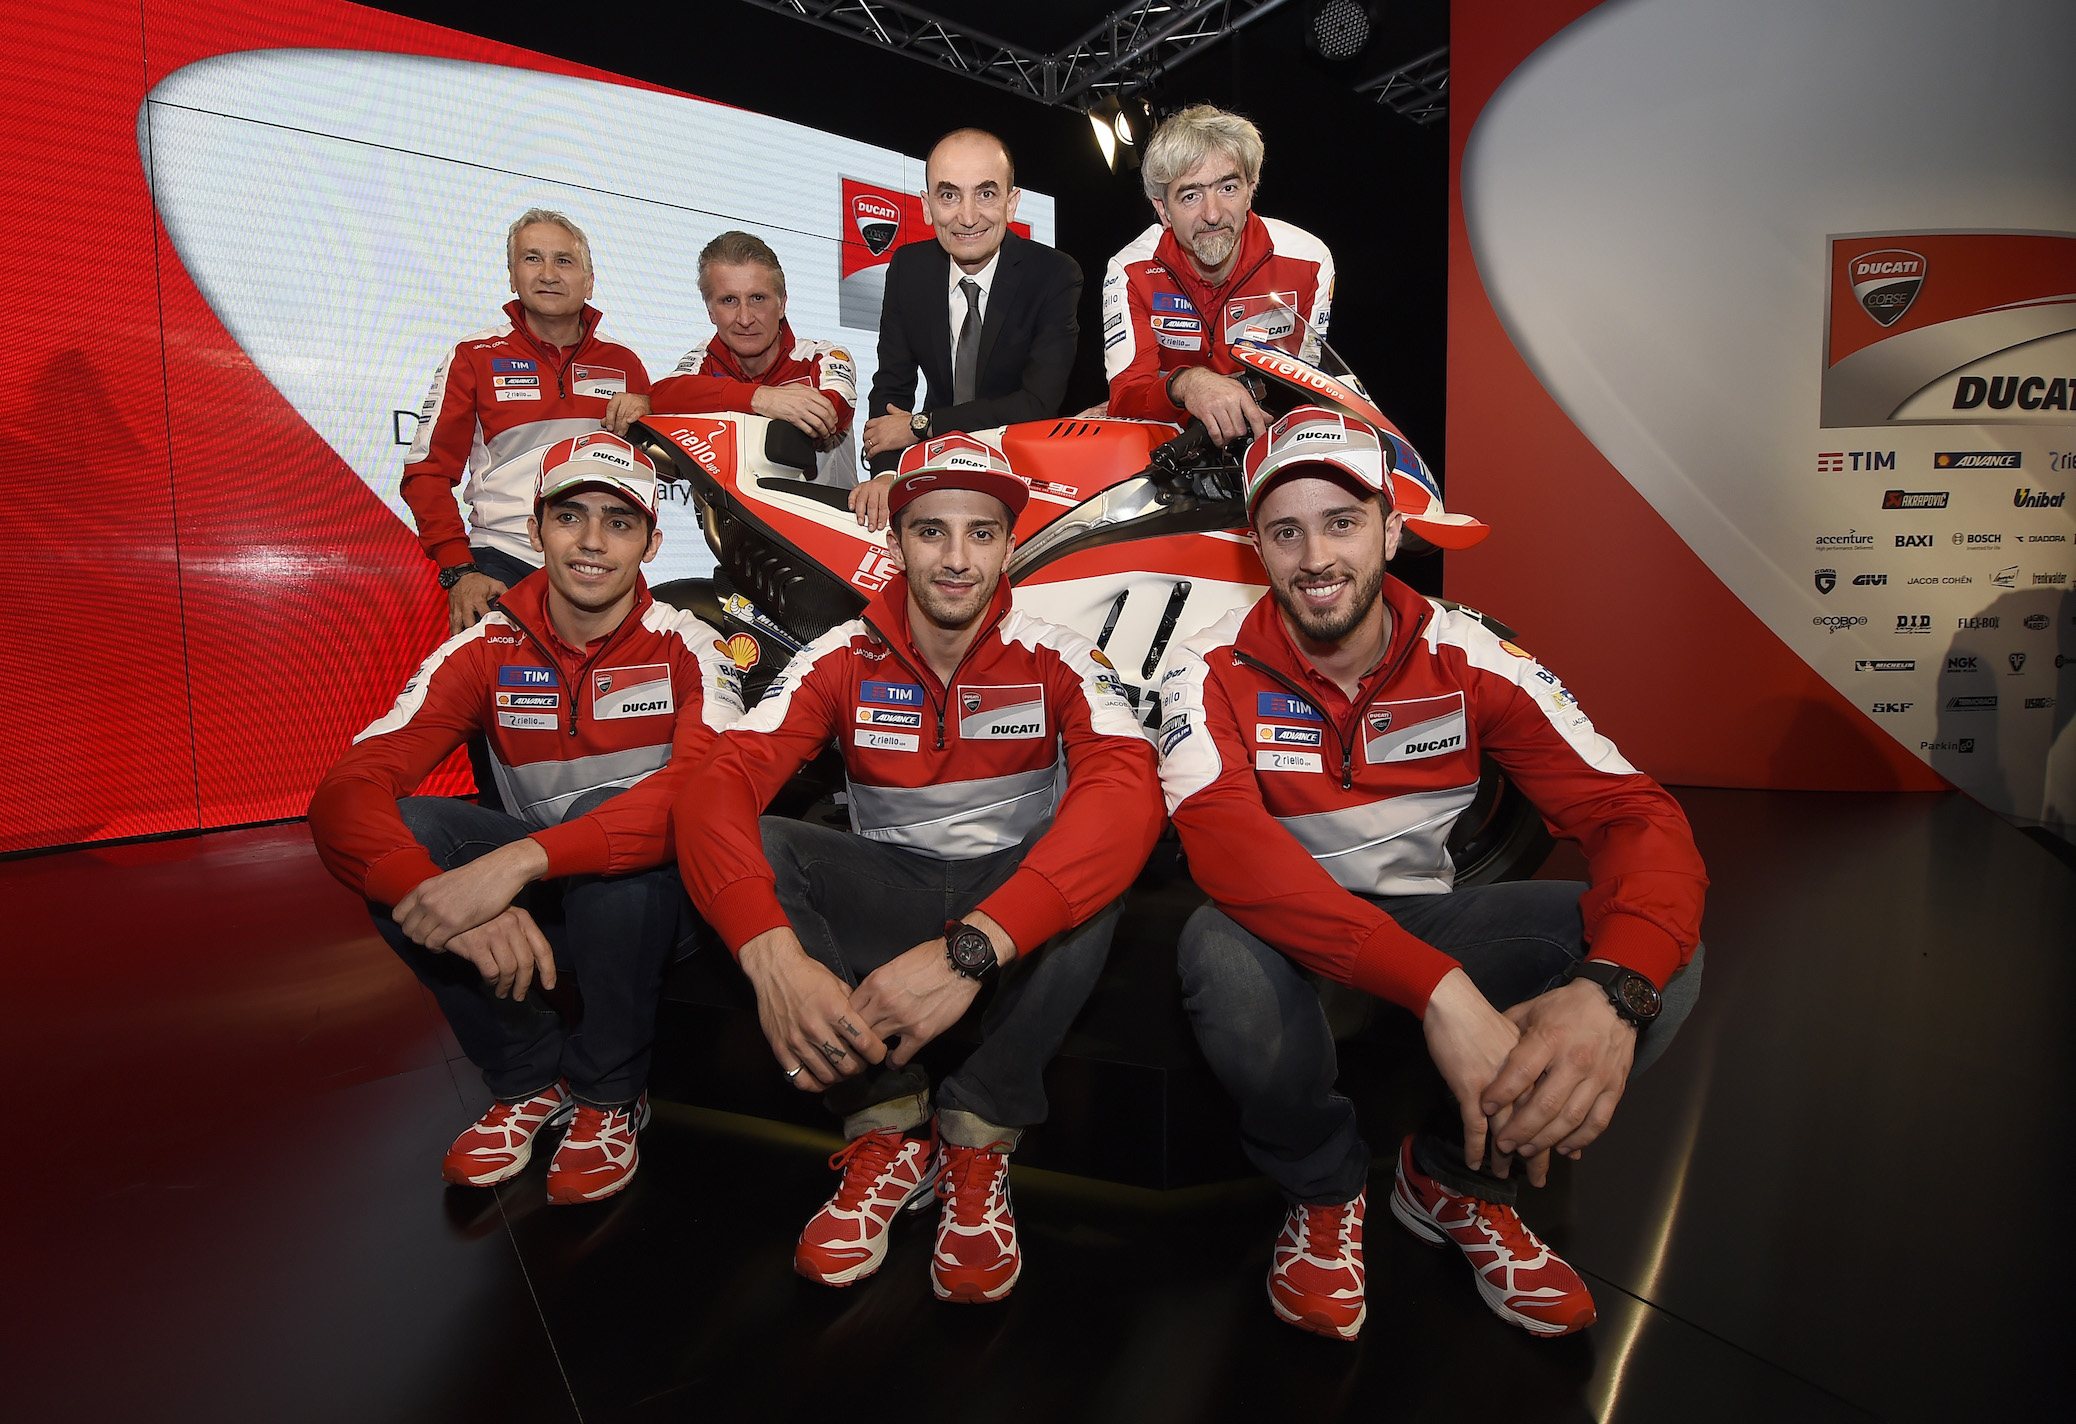 GIVI+is+the+new+sponsor+of+DUCATI+TEAM+at+the+motoGP